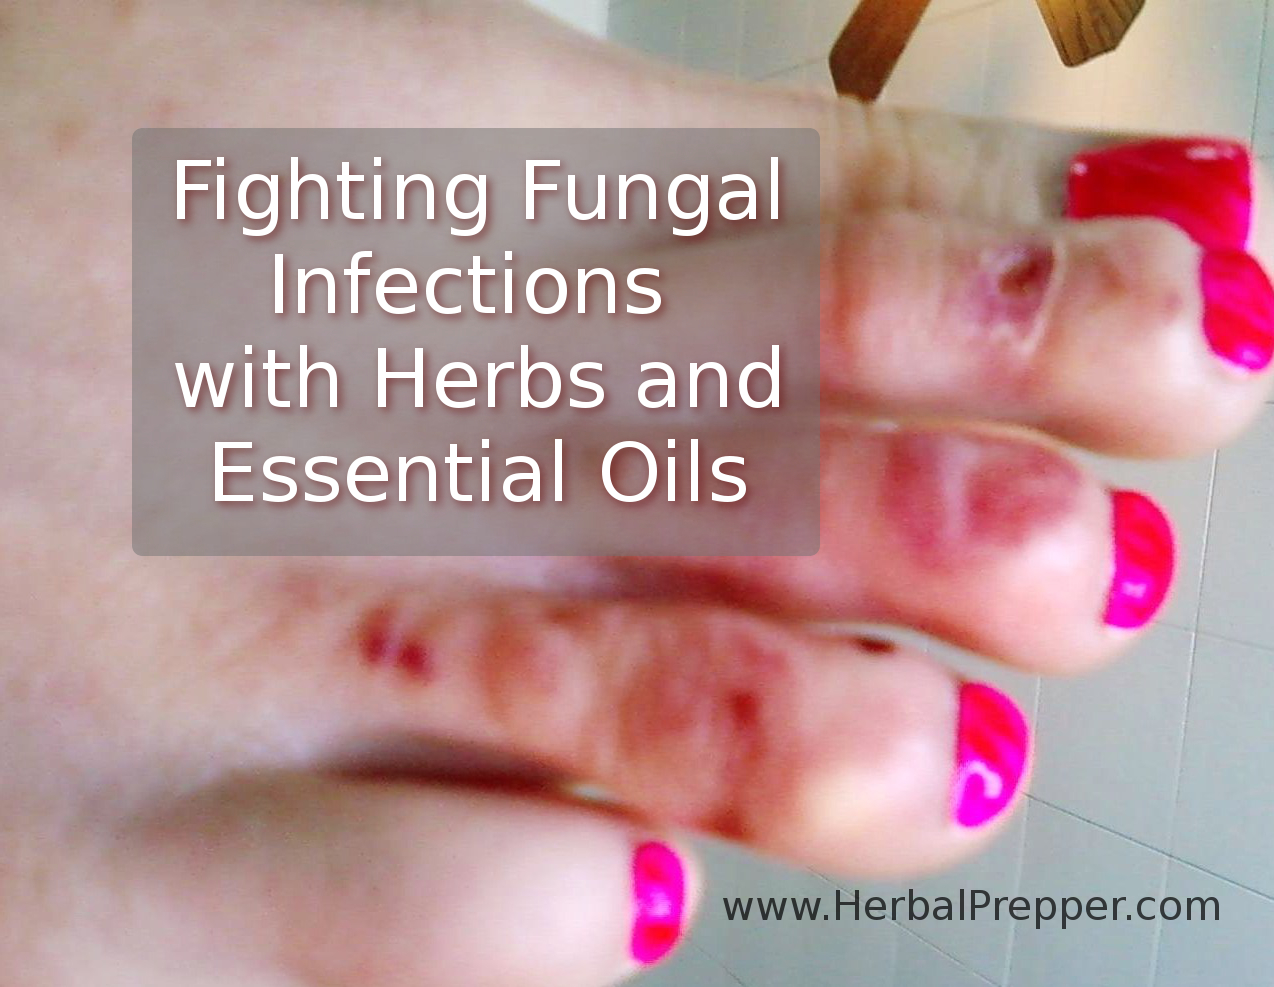 Fighting Fungal Infections with Herbs - Herbal Prepper